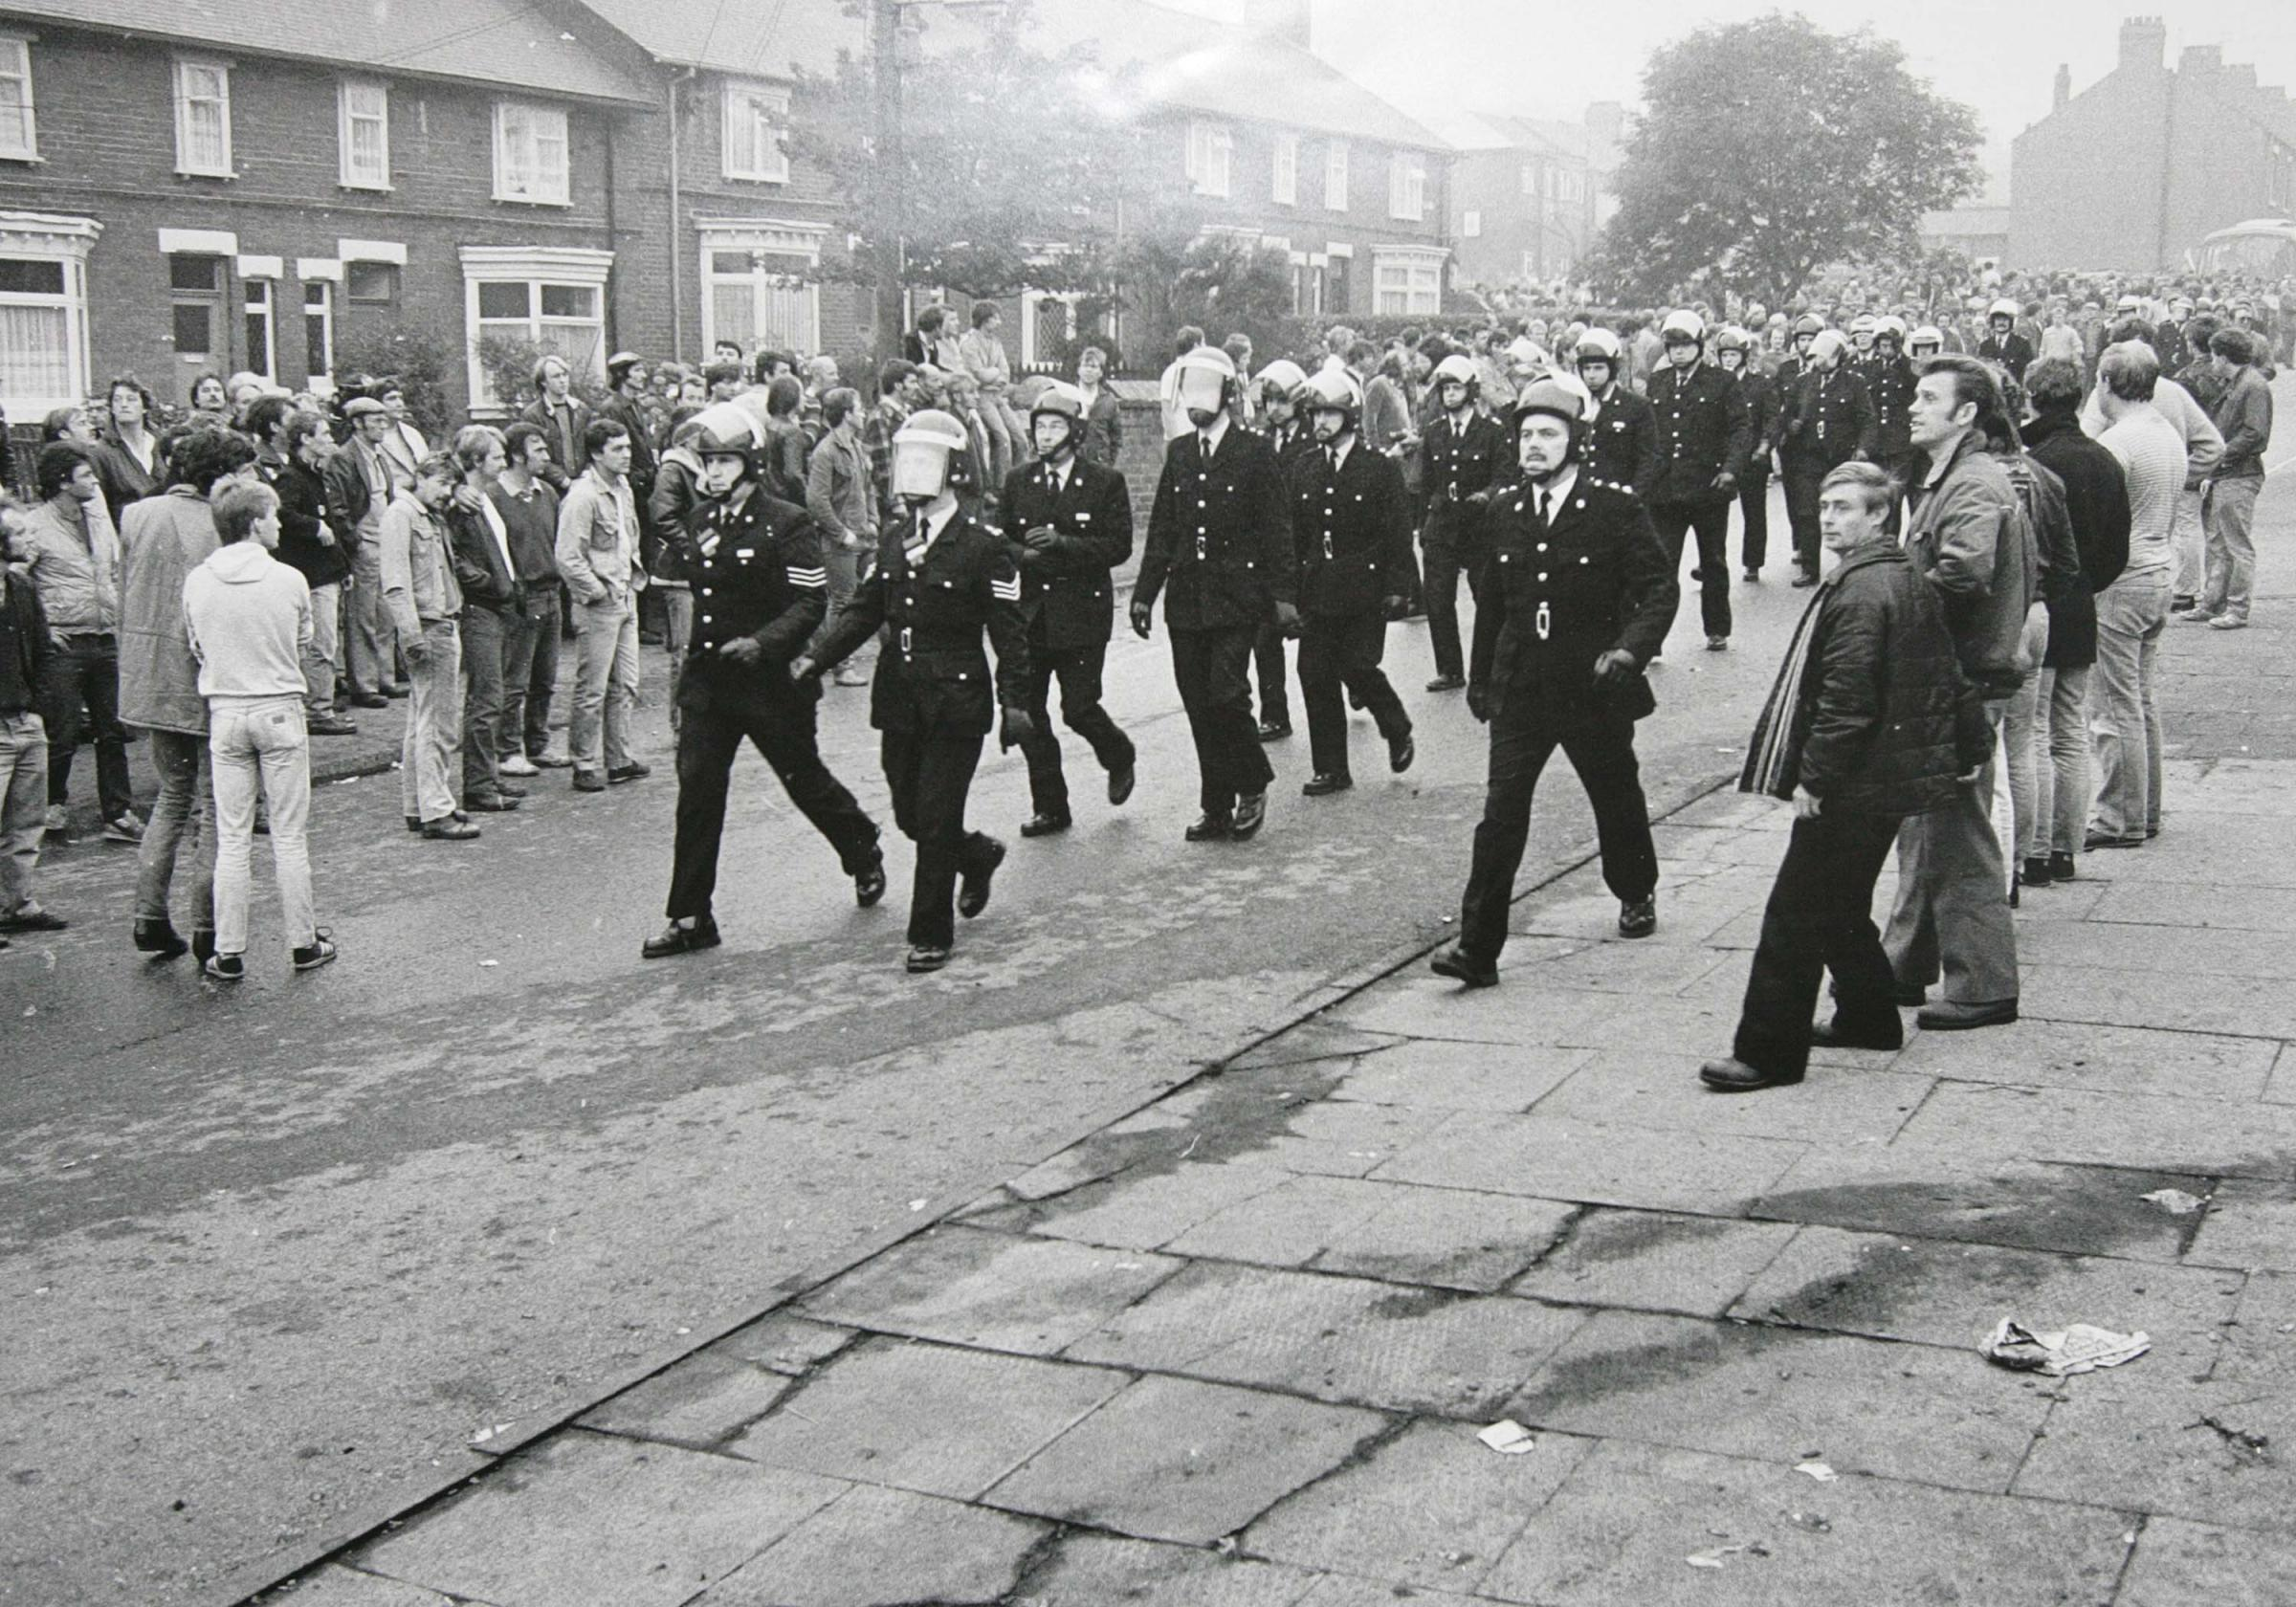 NEVER FORGOTTEN: Easington during the Miners' Strike. Photograph by Keith Pattison